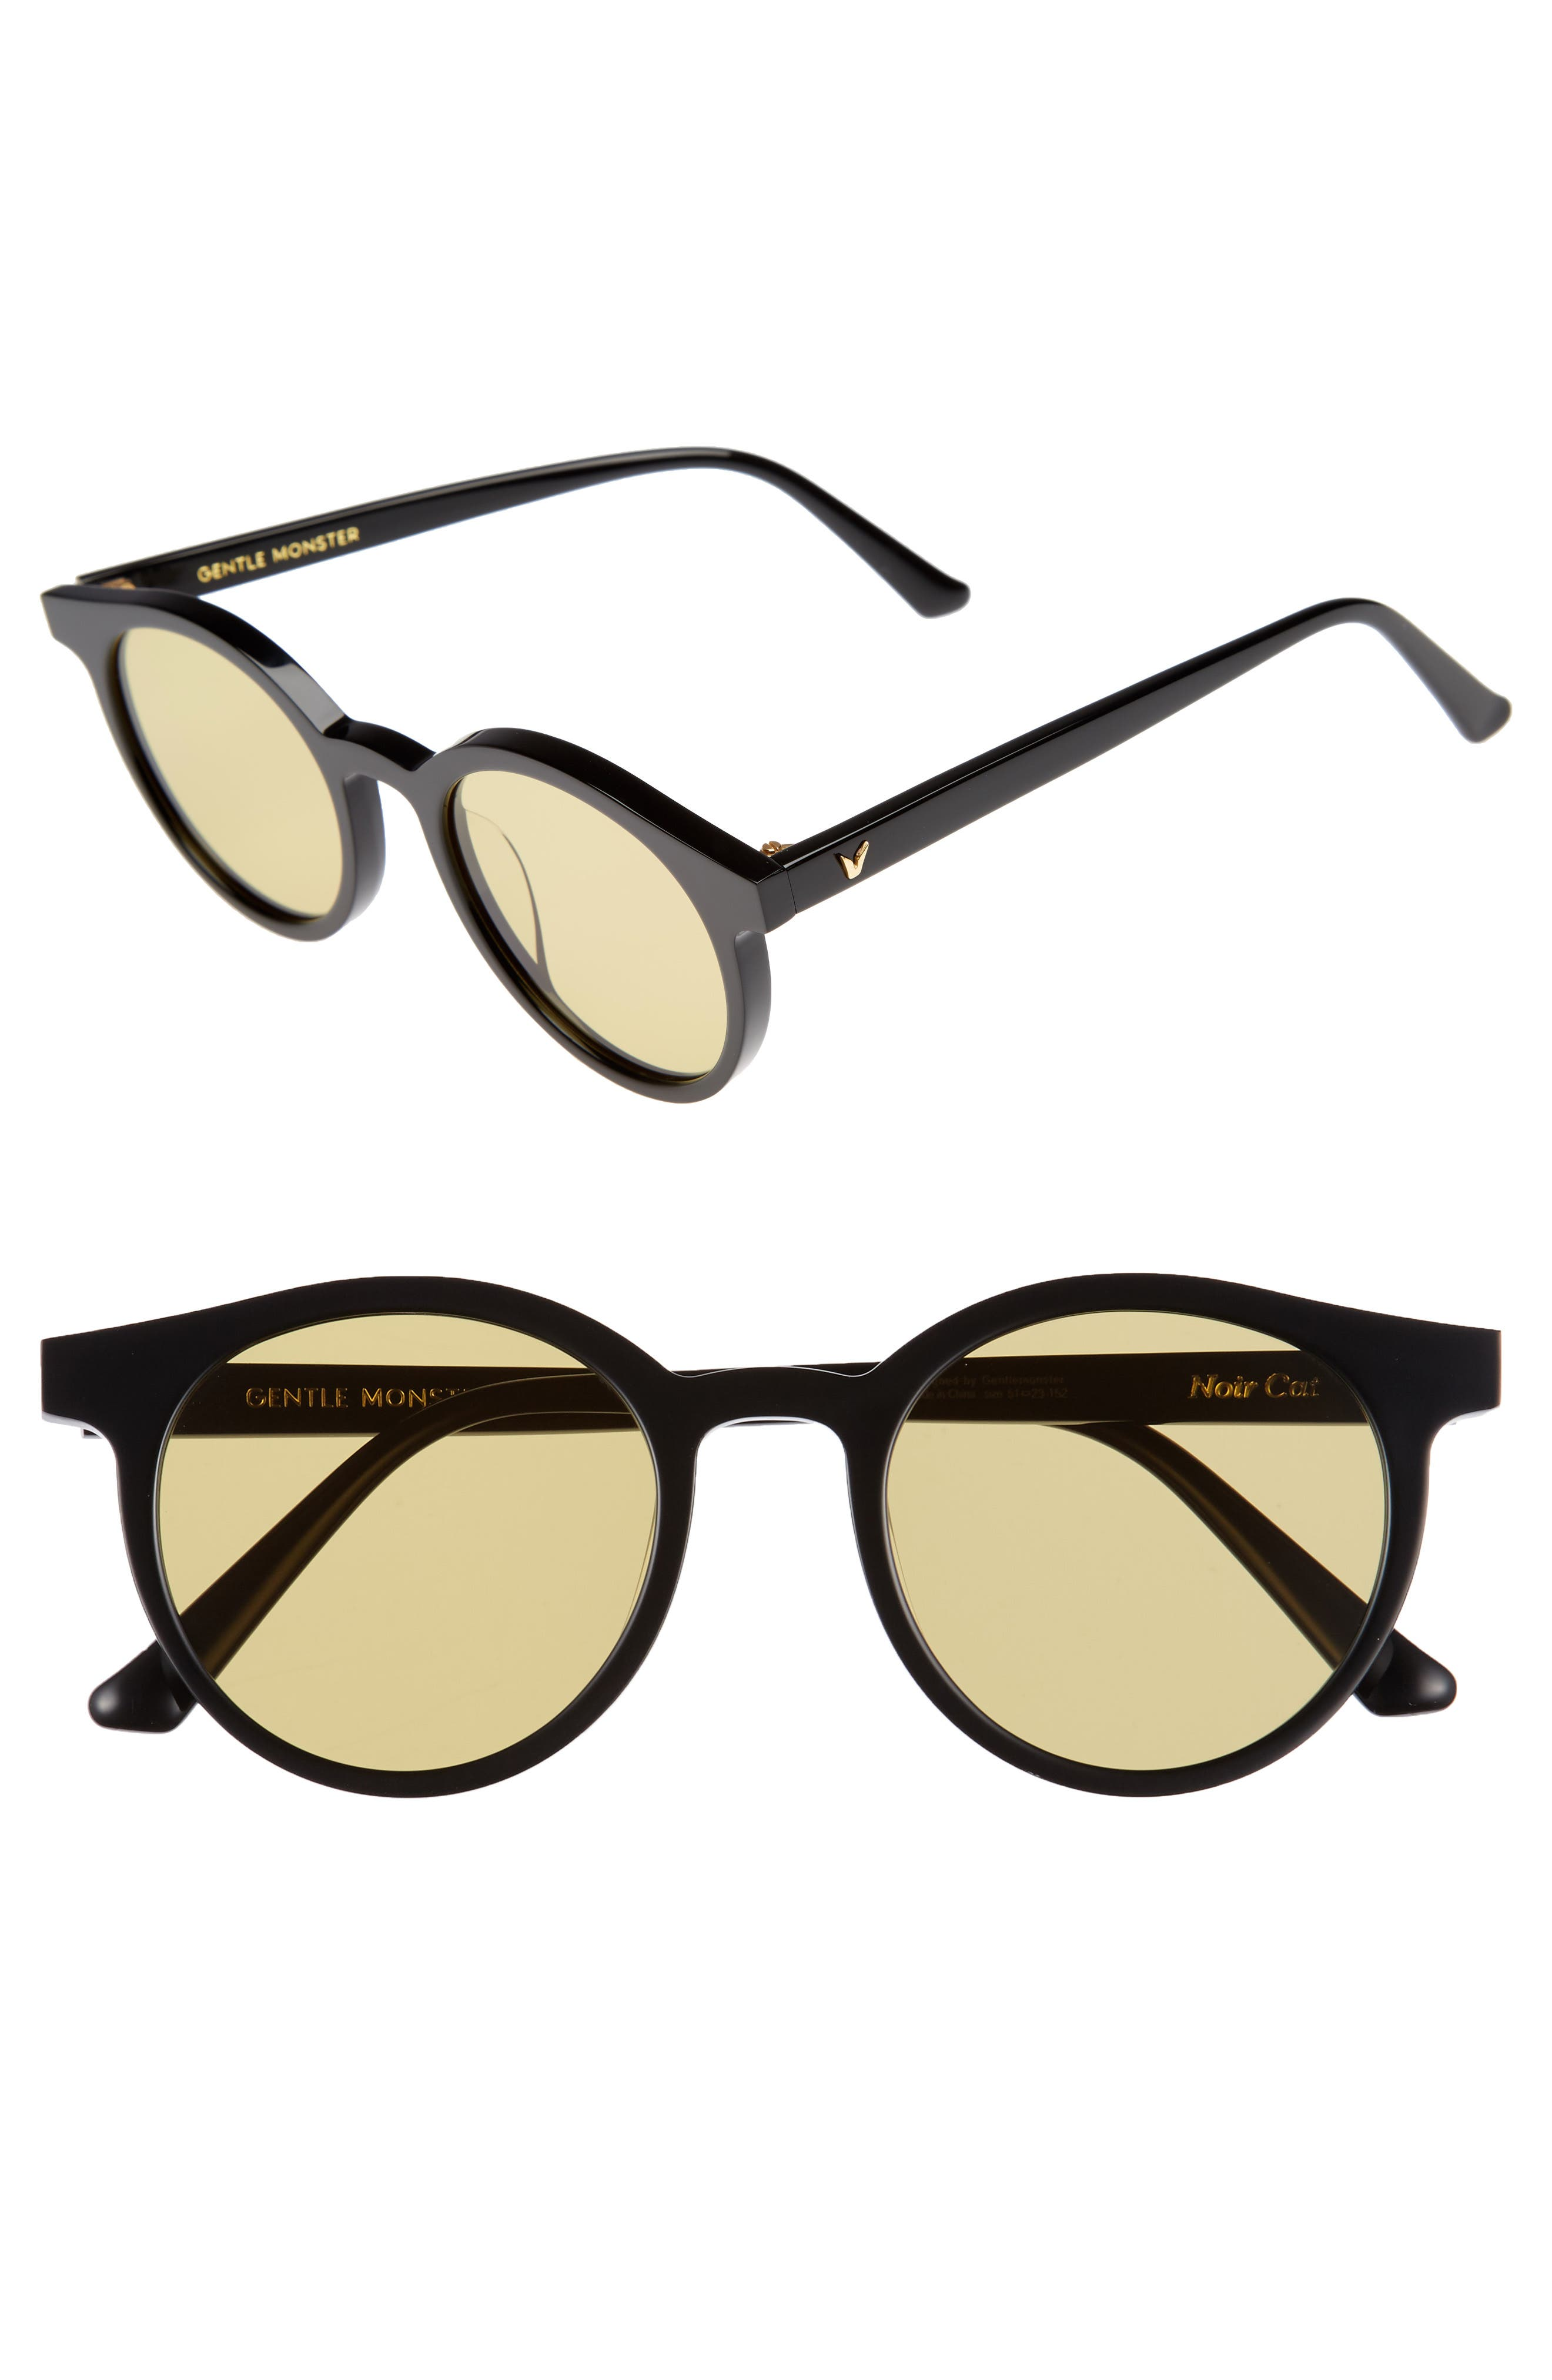 GENTLE MONSTER Noir Cat 51mm Round Sunglasses